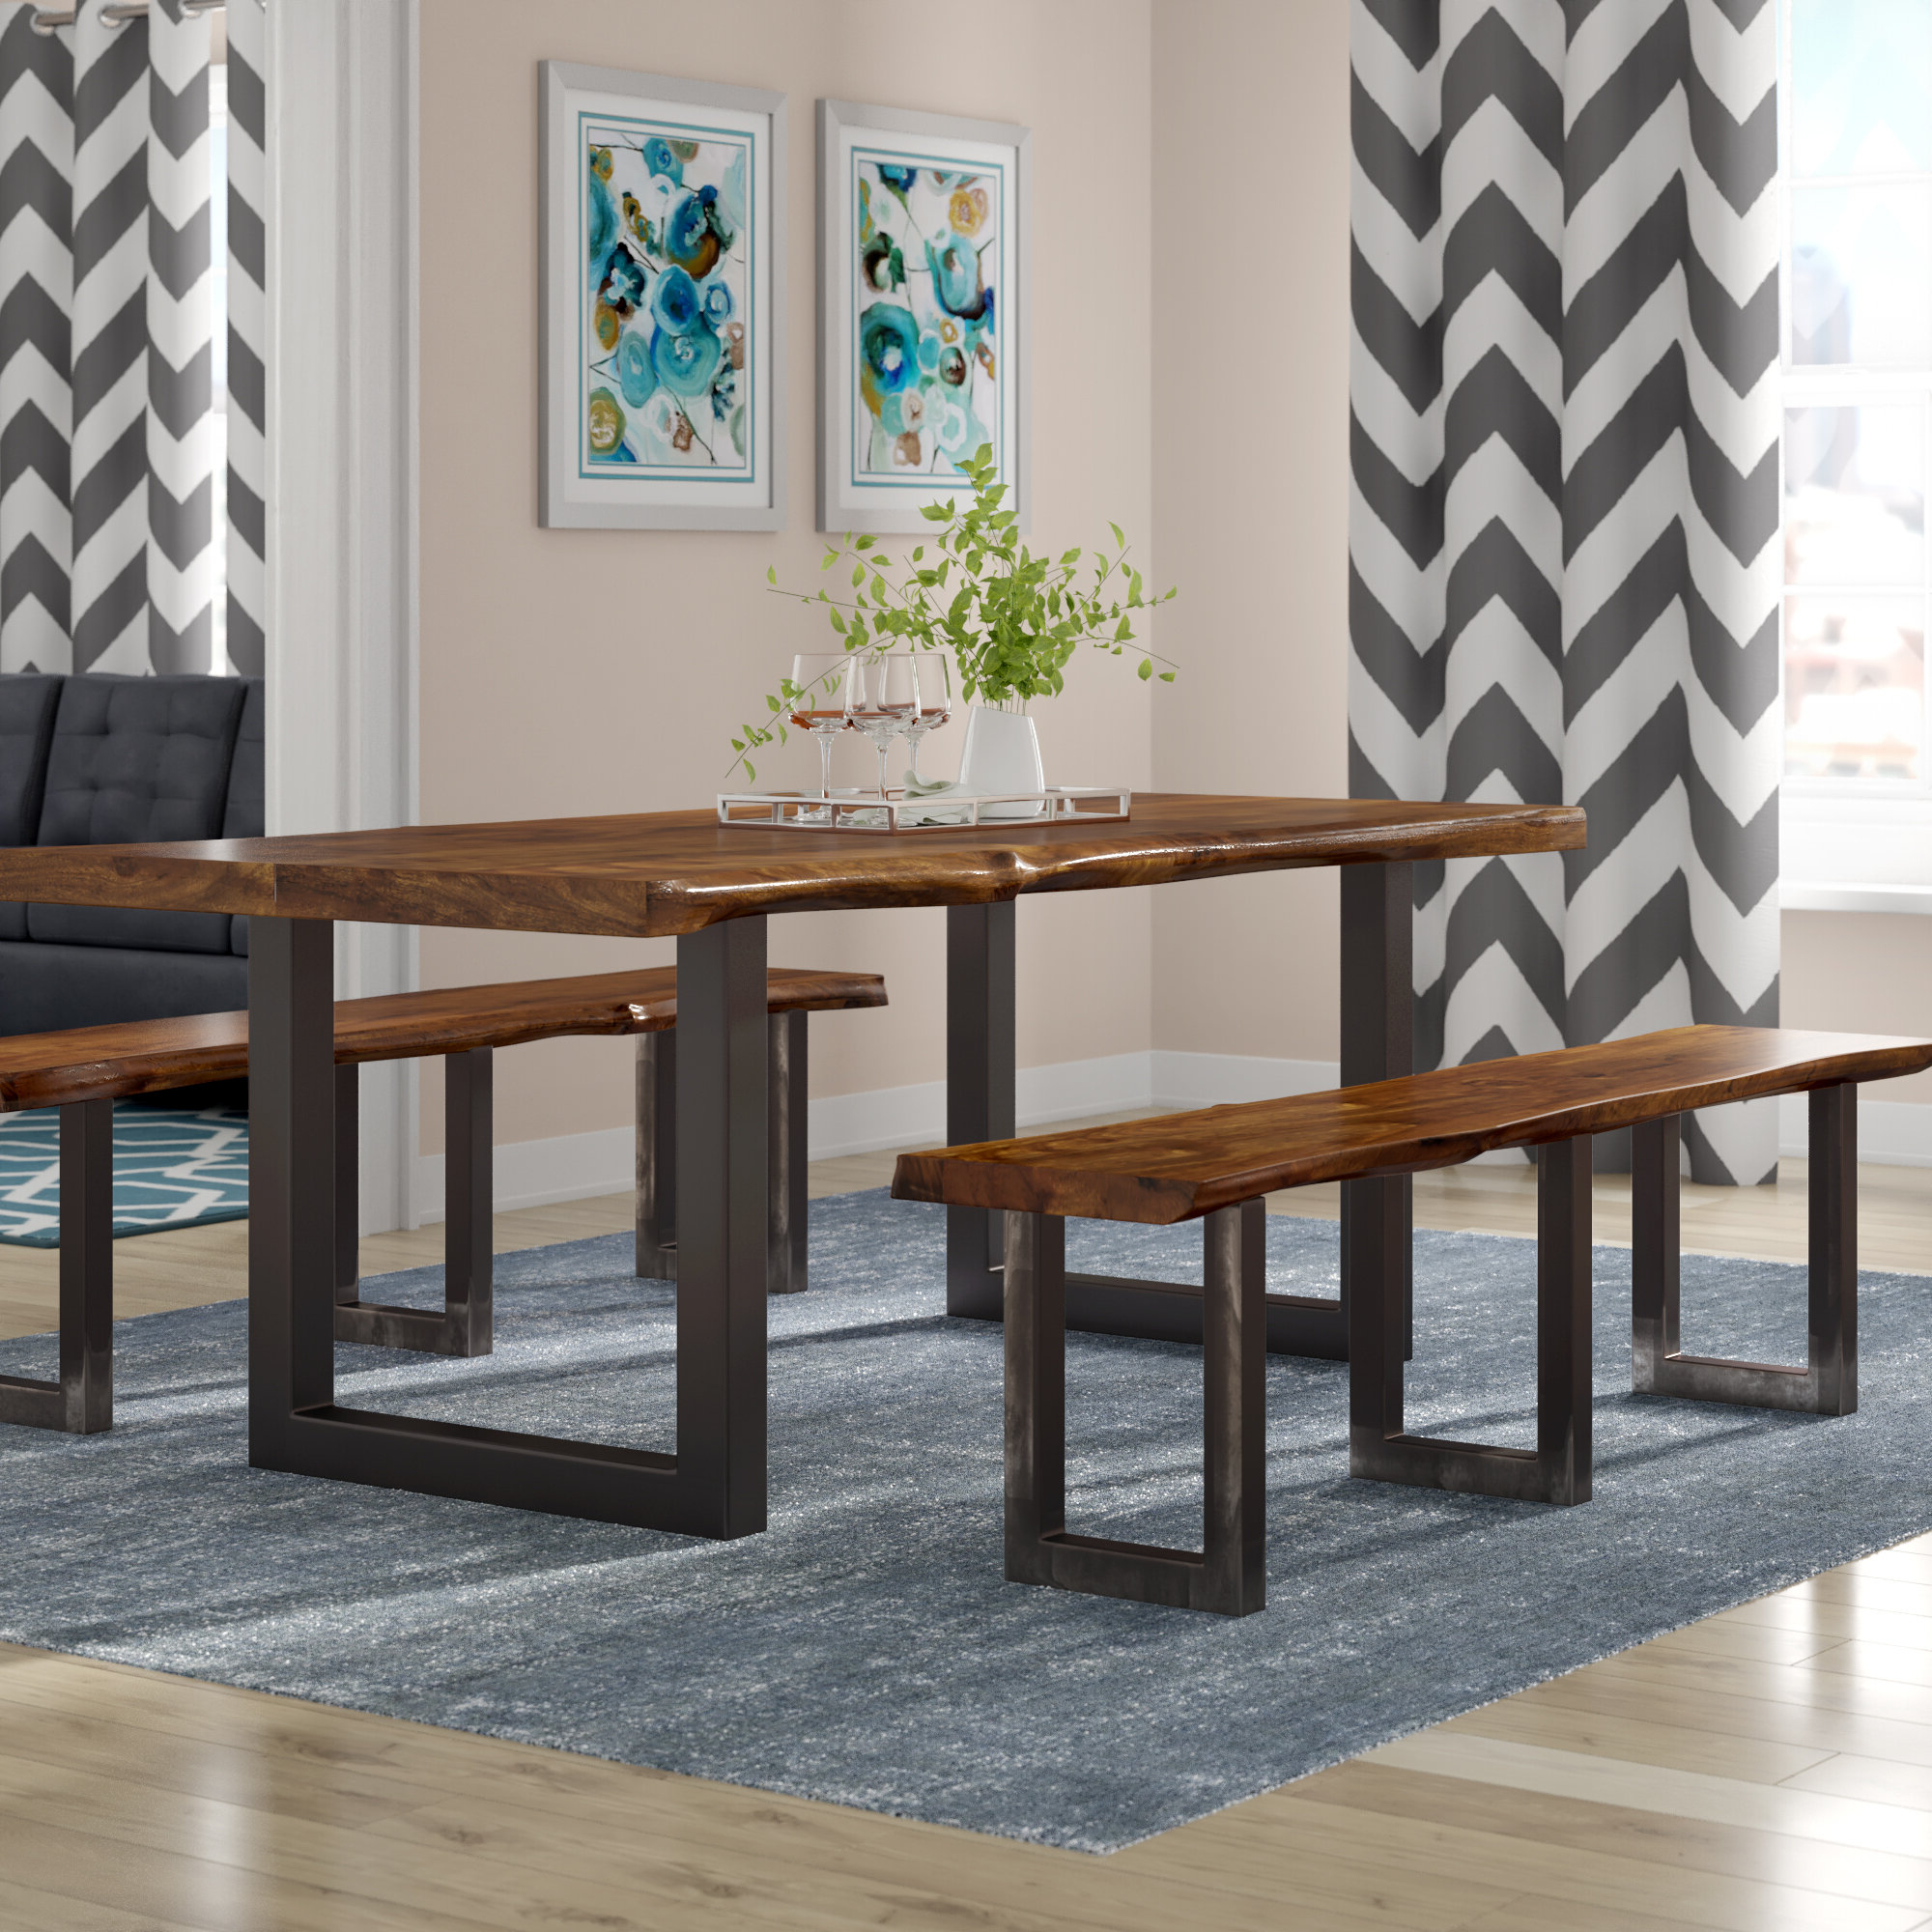 Wayfair For Preferred Valladares 3 Piece Pub Table Sets (View 16 of 25)